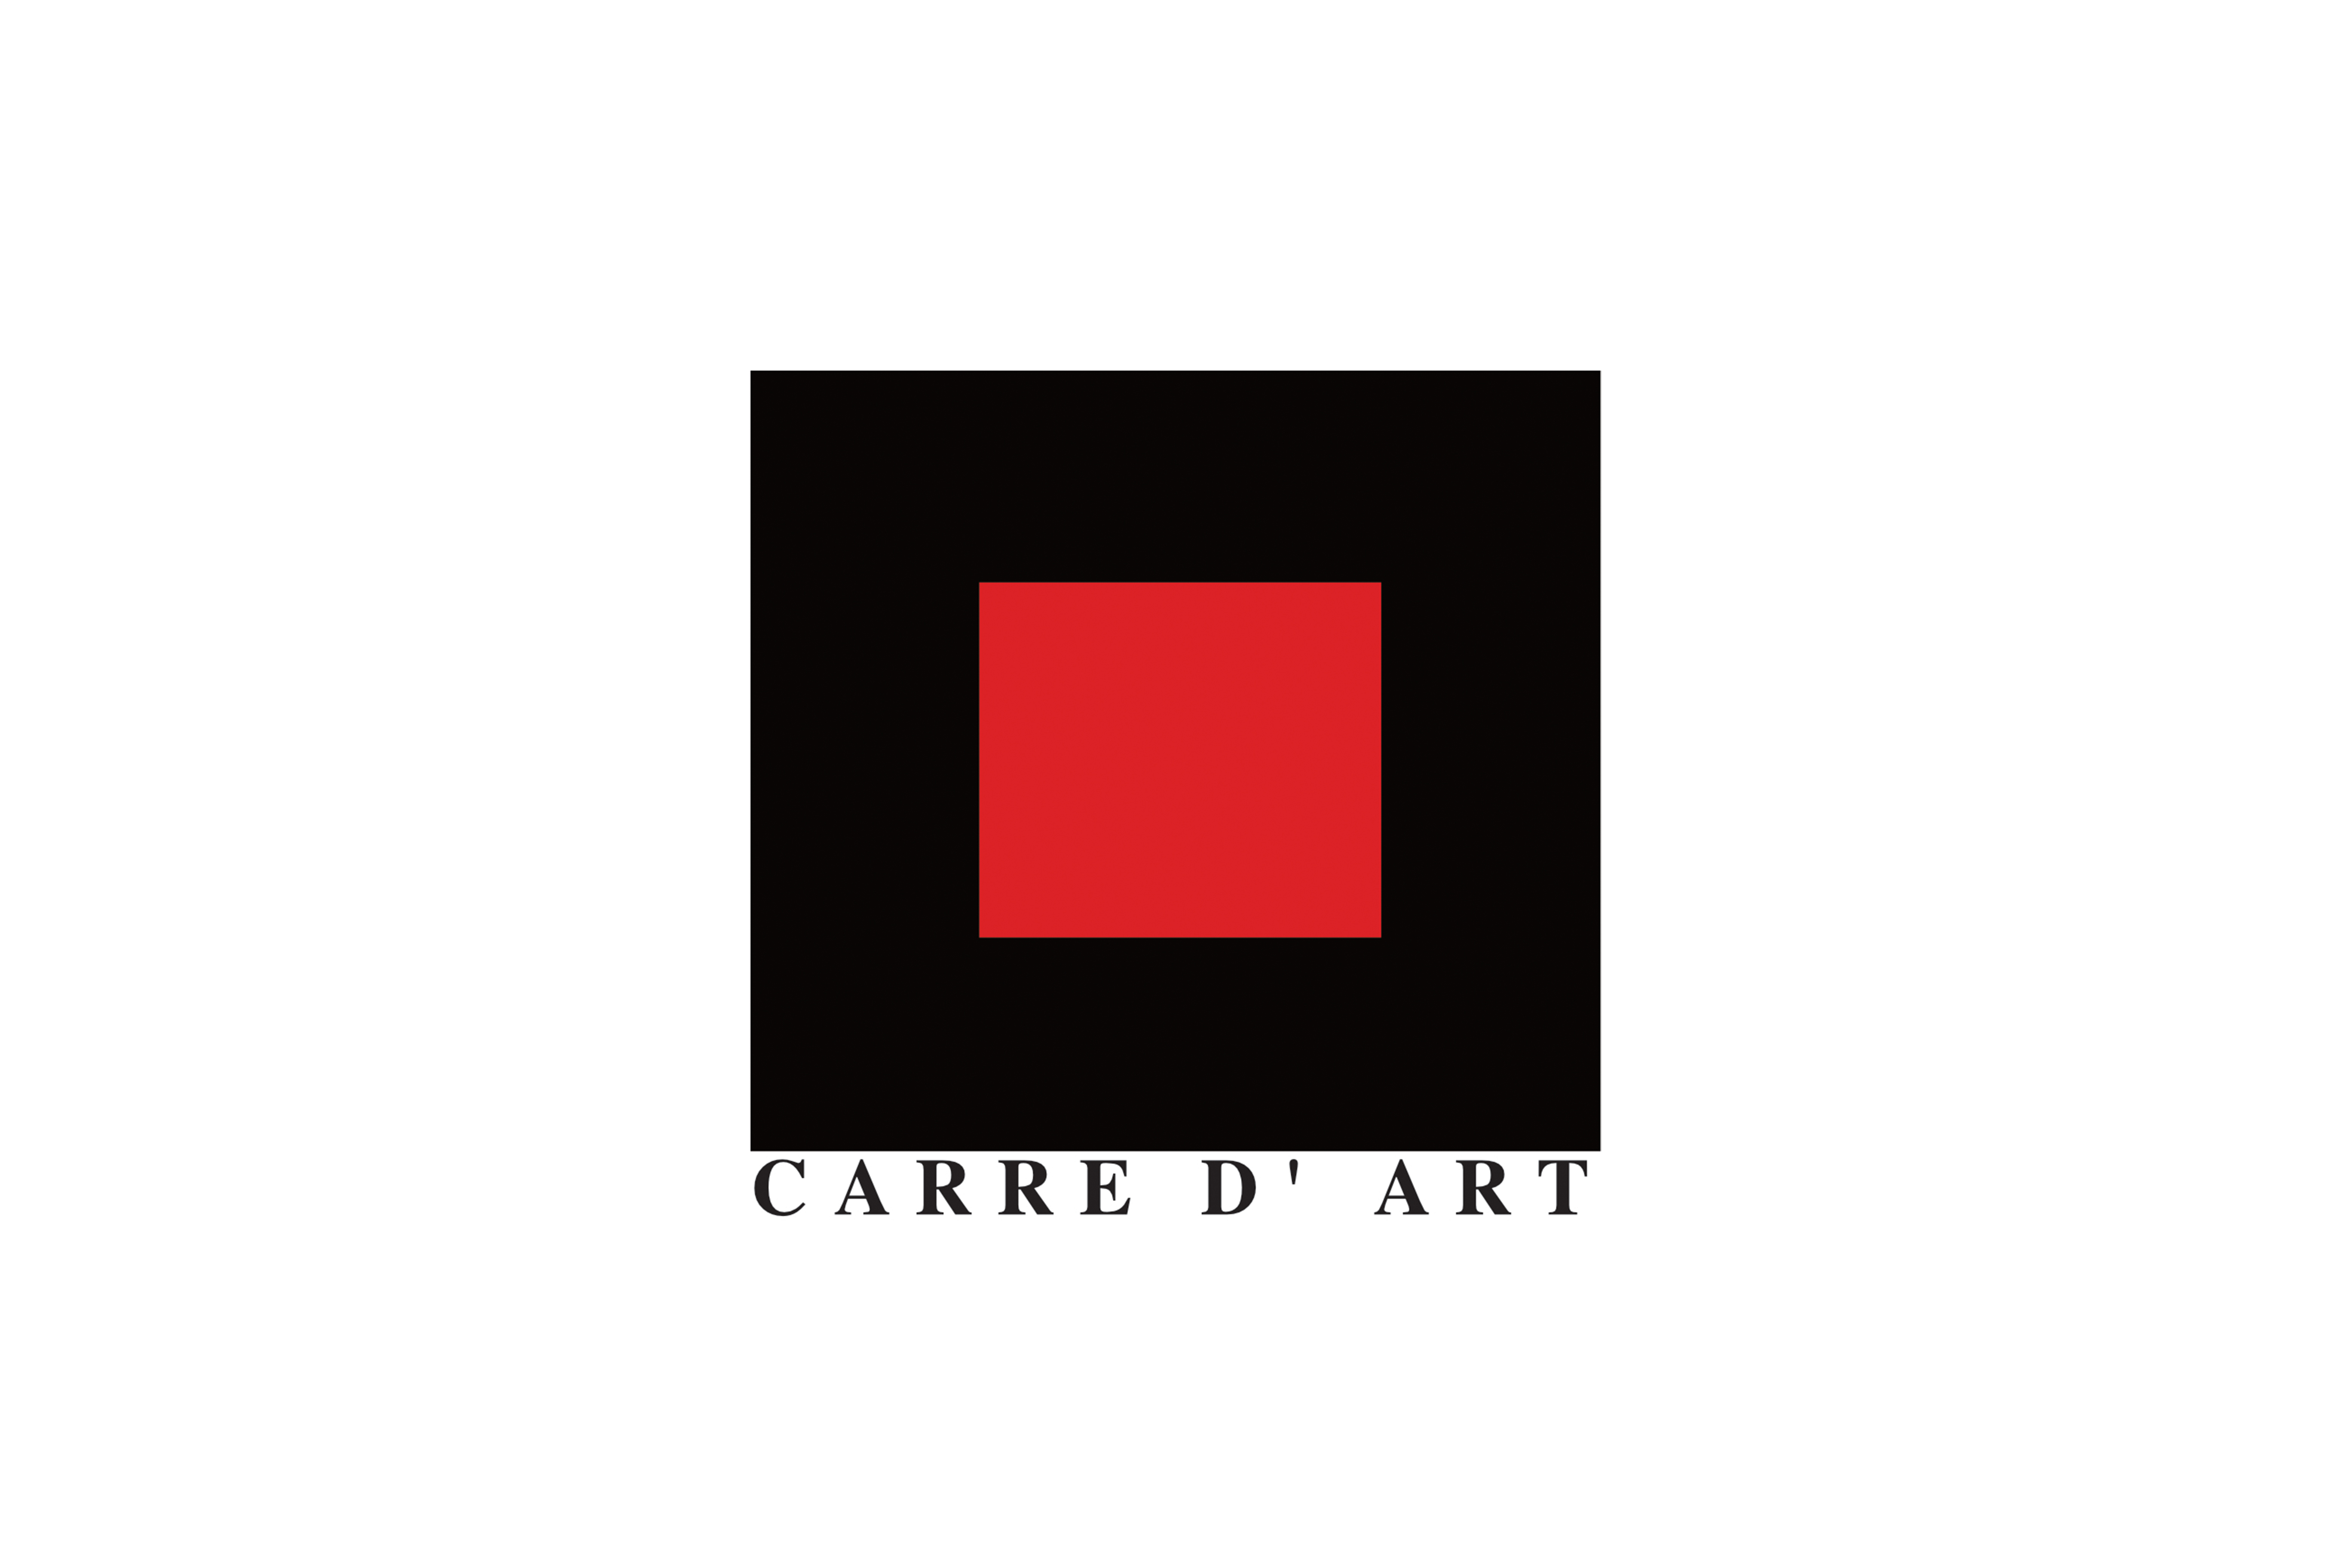 Carré d'Art